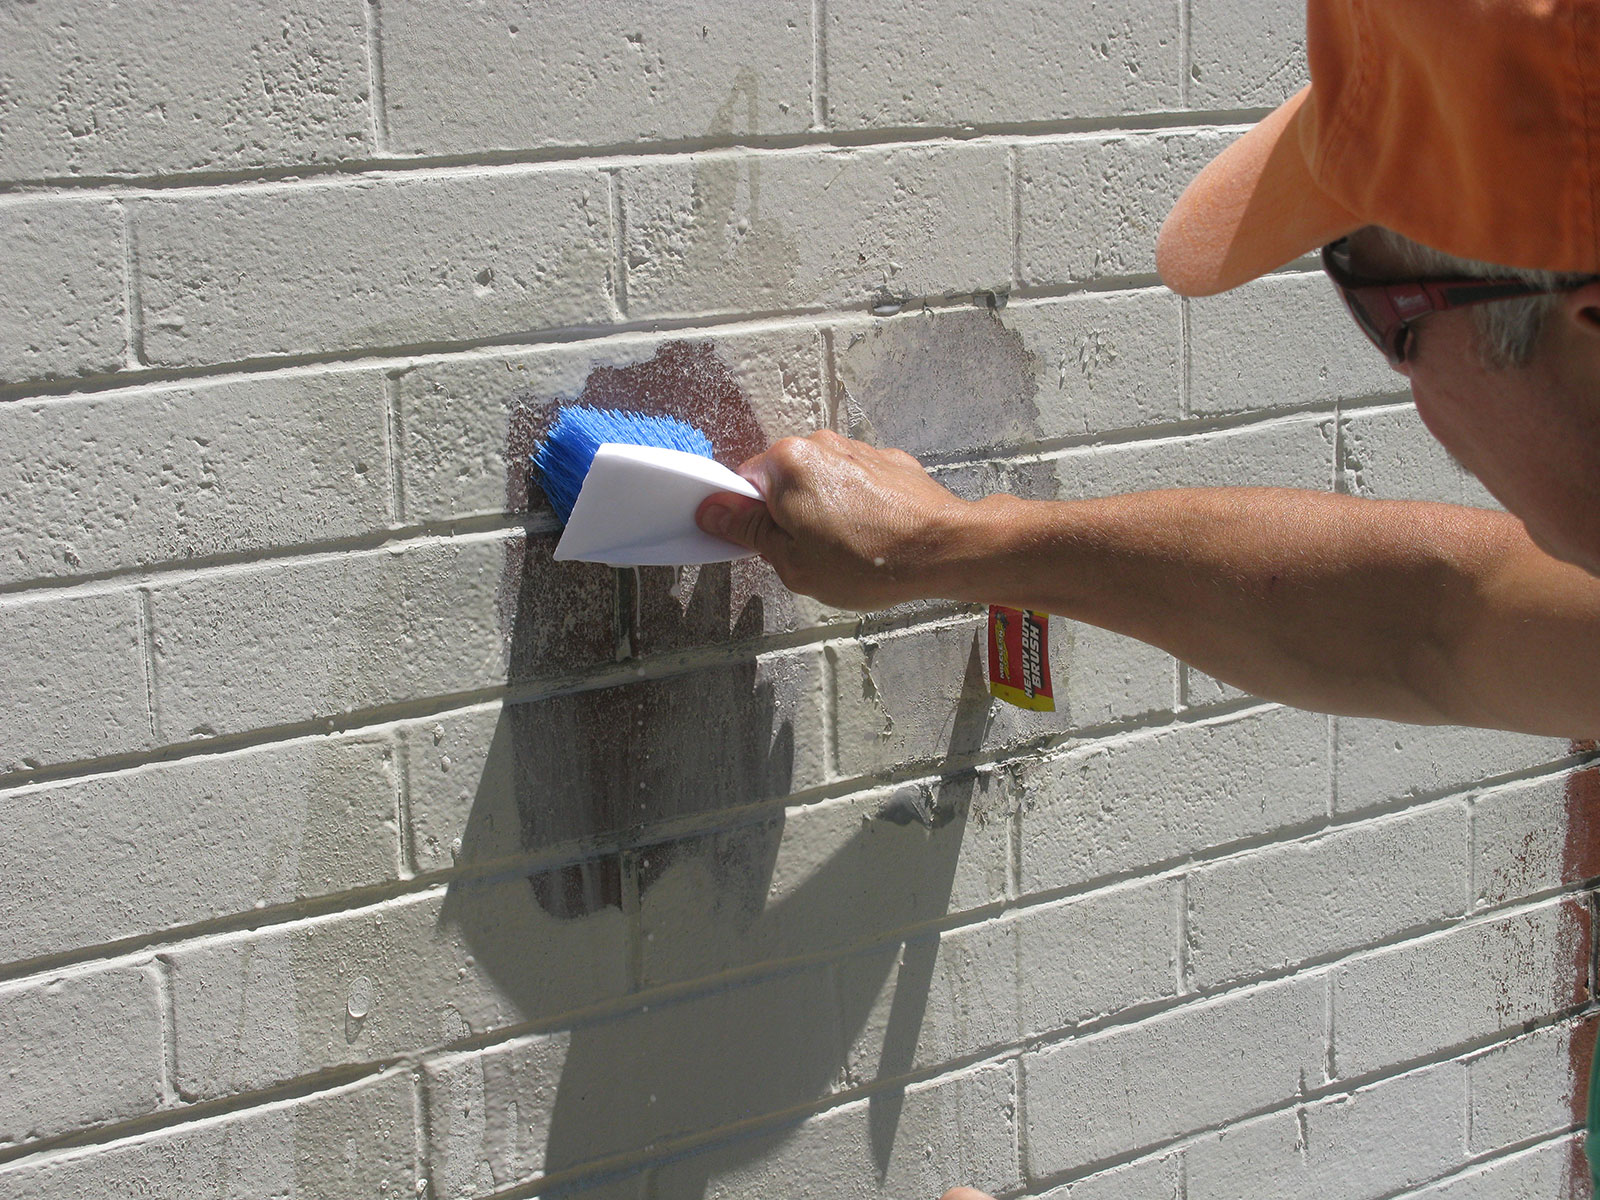 Brushes How to Remove Paint from Bricks (A Useful Guide)